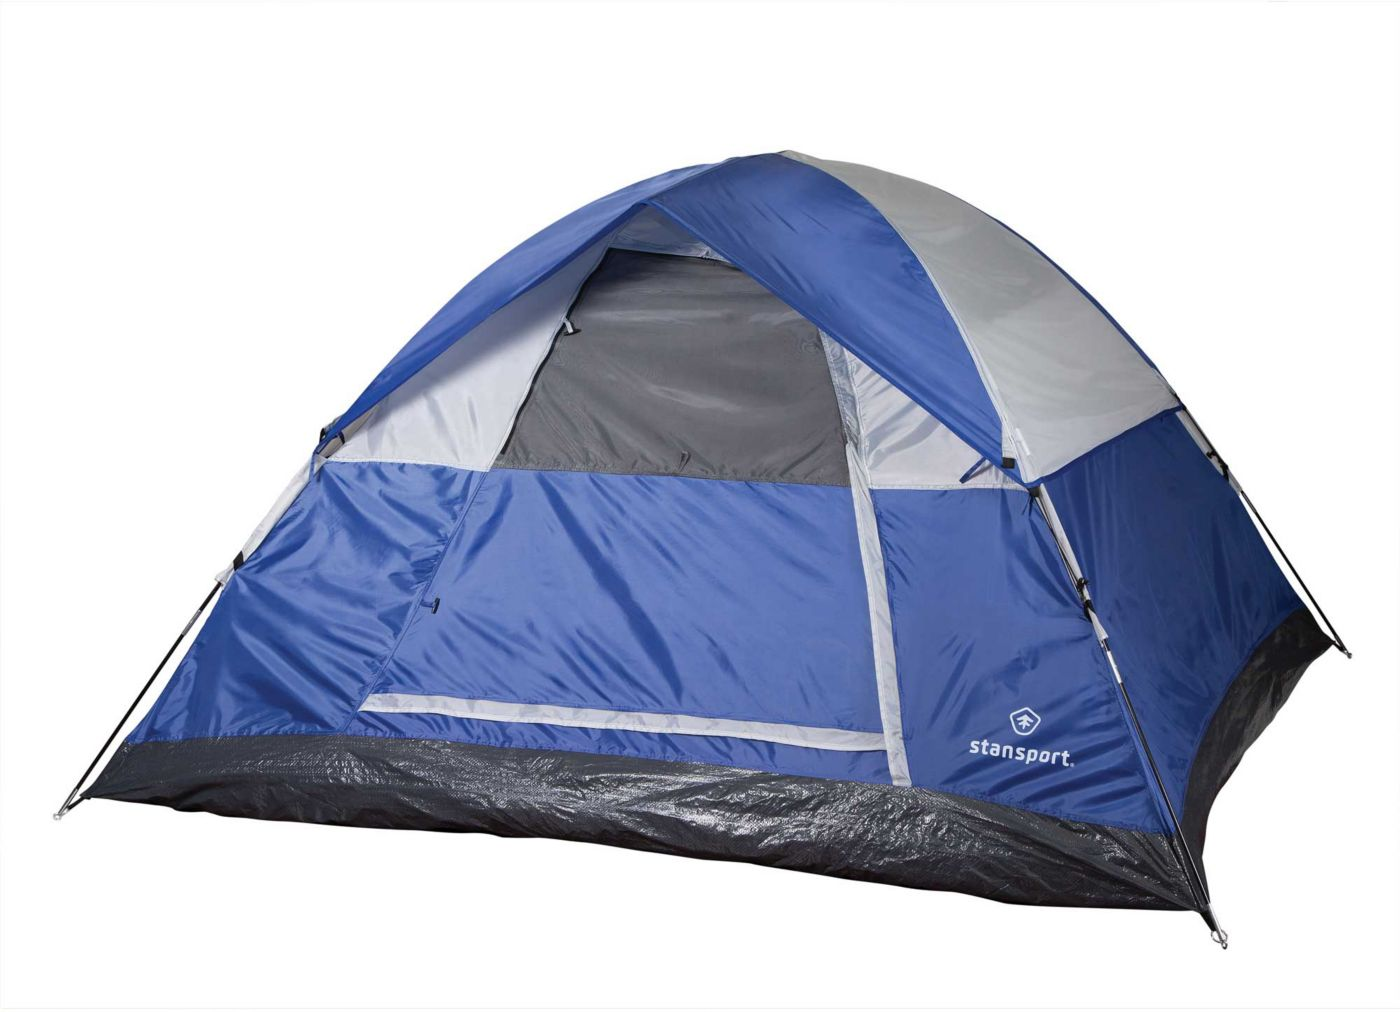 Stansport Pine Creek 3-Person Dome Tent